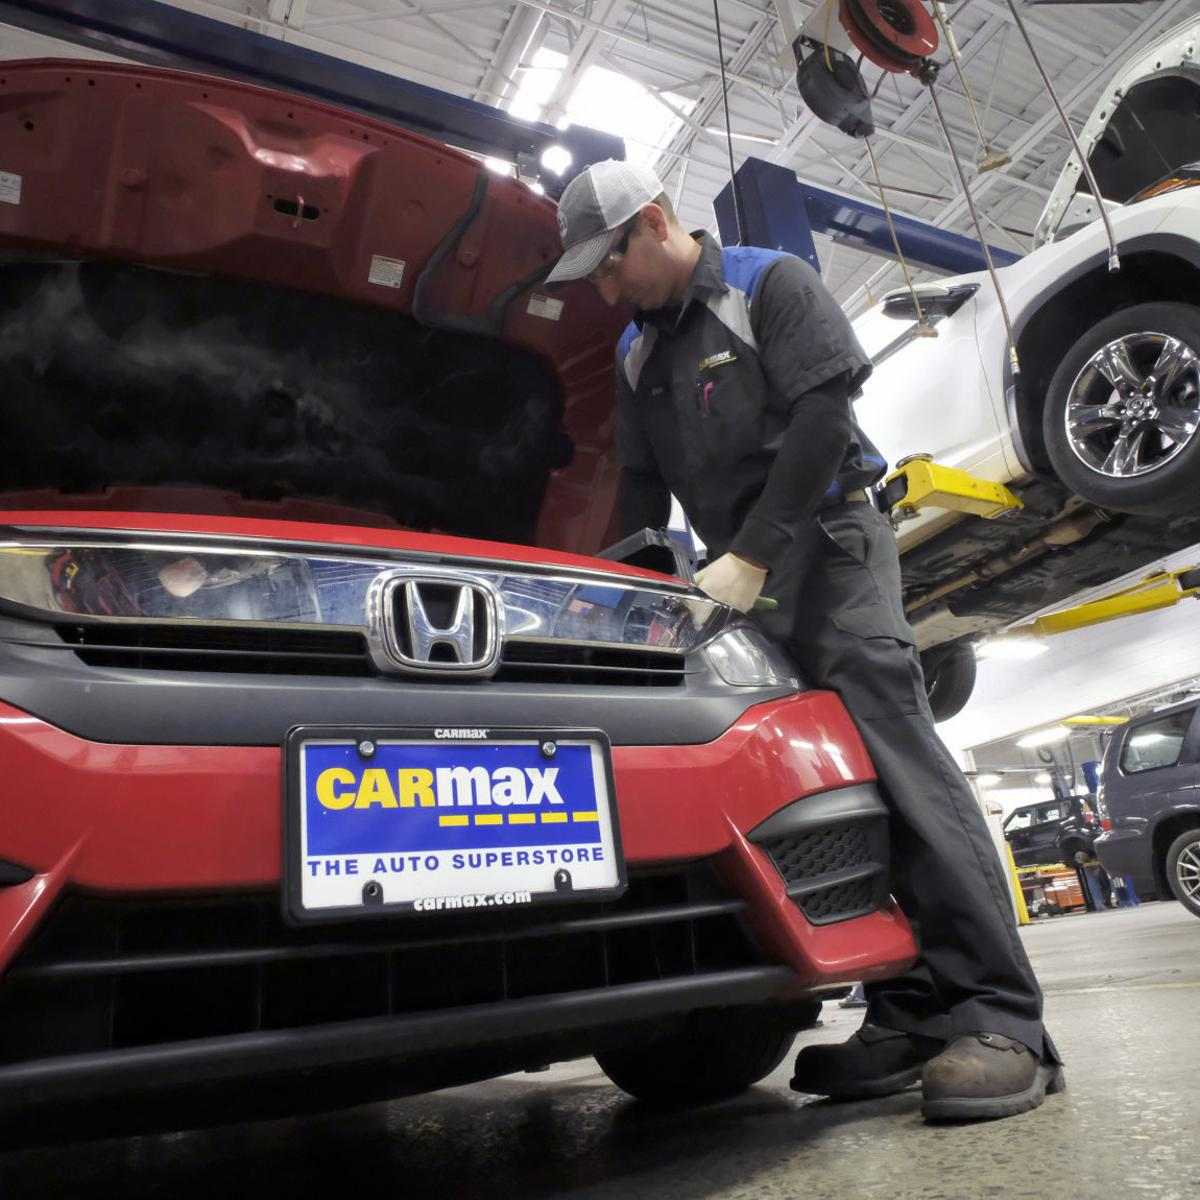 Carmax Career Can Take Employees To Places They Never Imagined